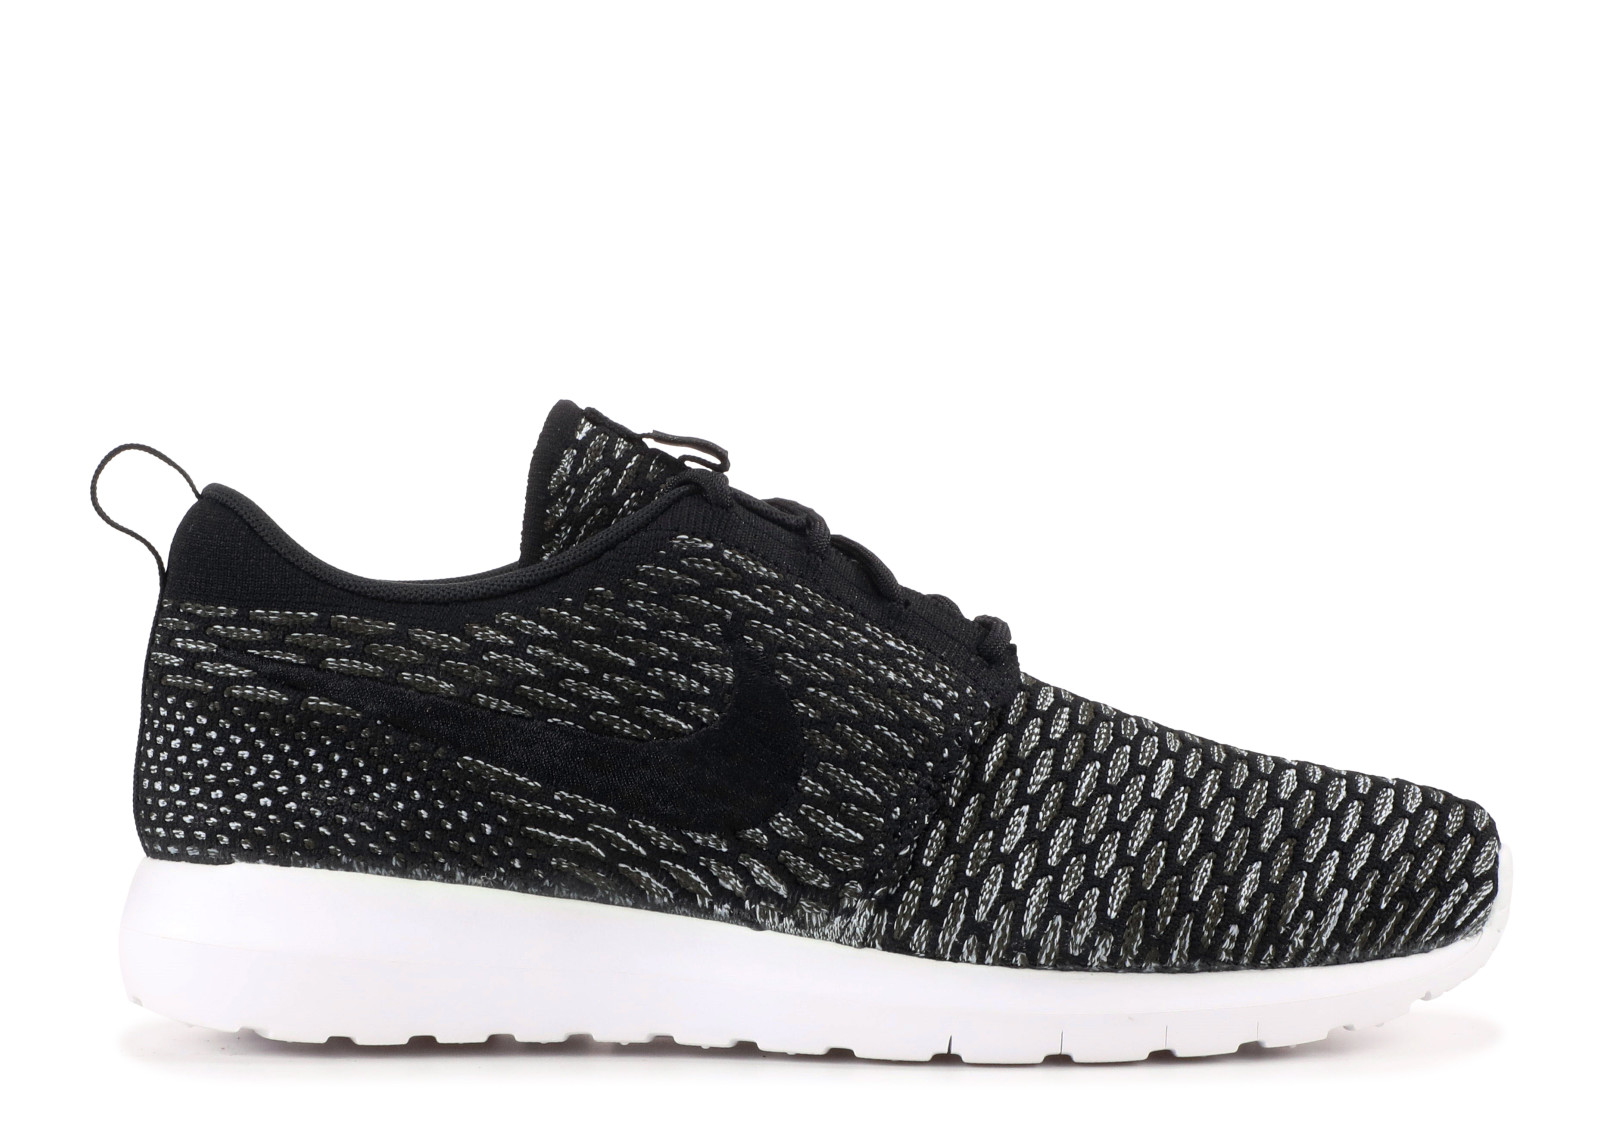 sports shoes 2ac00 cf0f2 Prev Flyknit Roshe Run Blue Armory Sequoia Black Light 677243-003